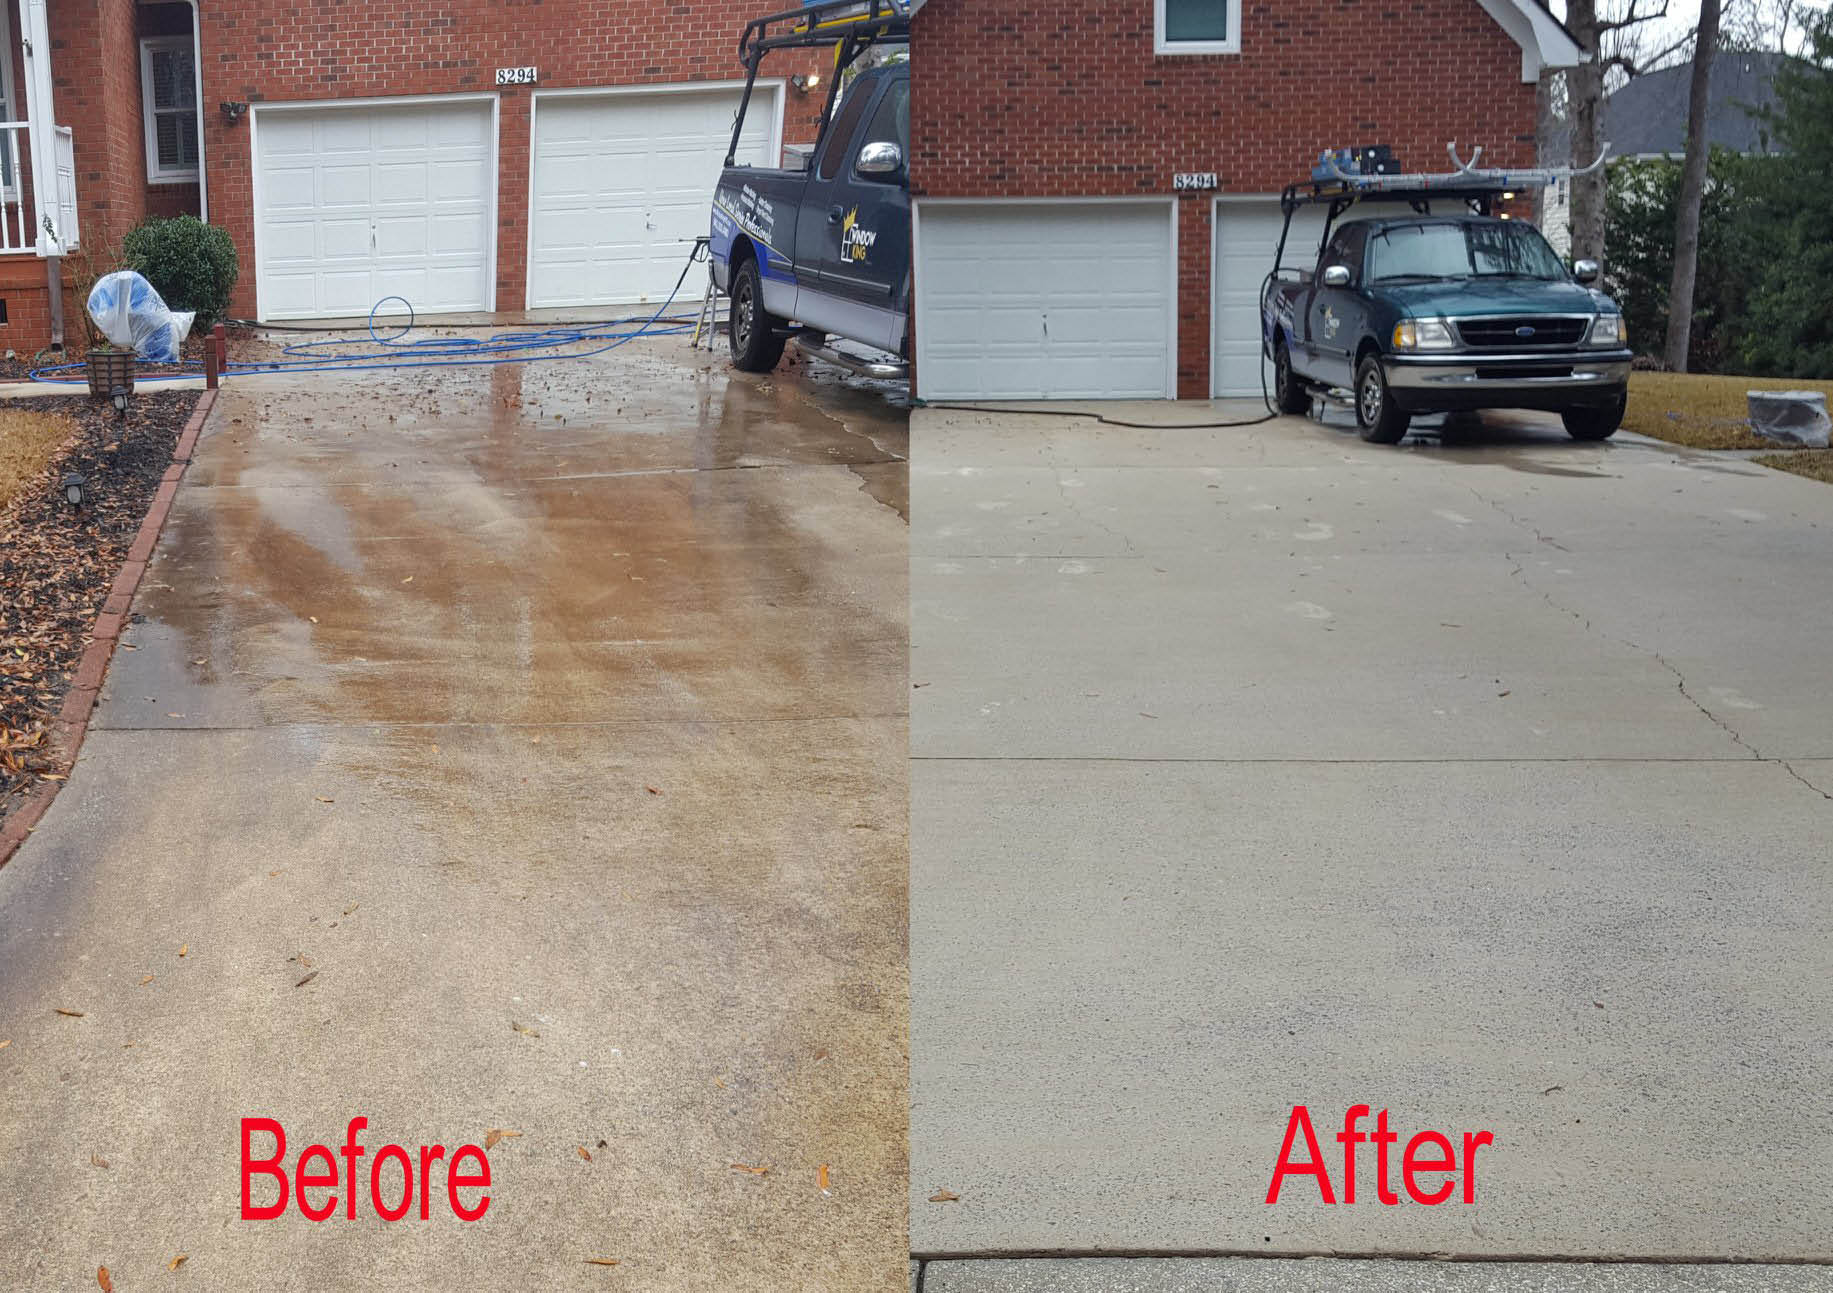 Pressure washing, cleaning services near James Island